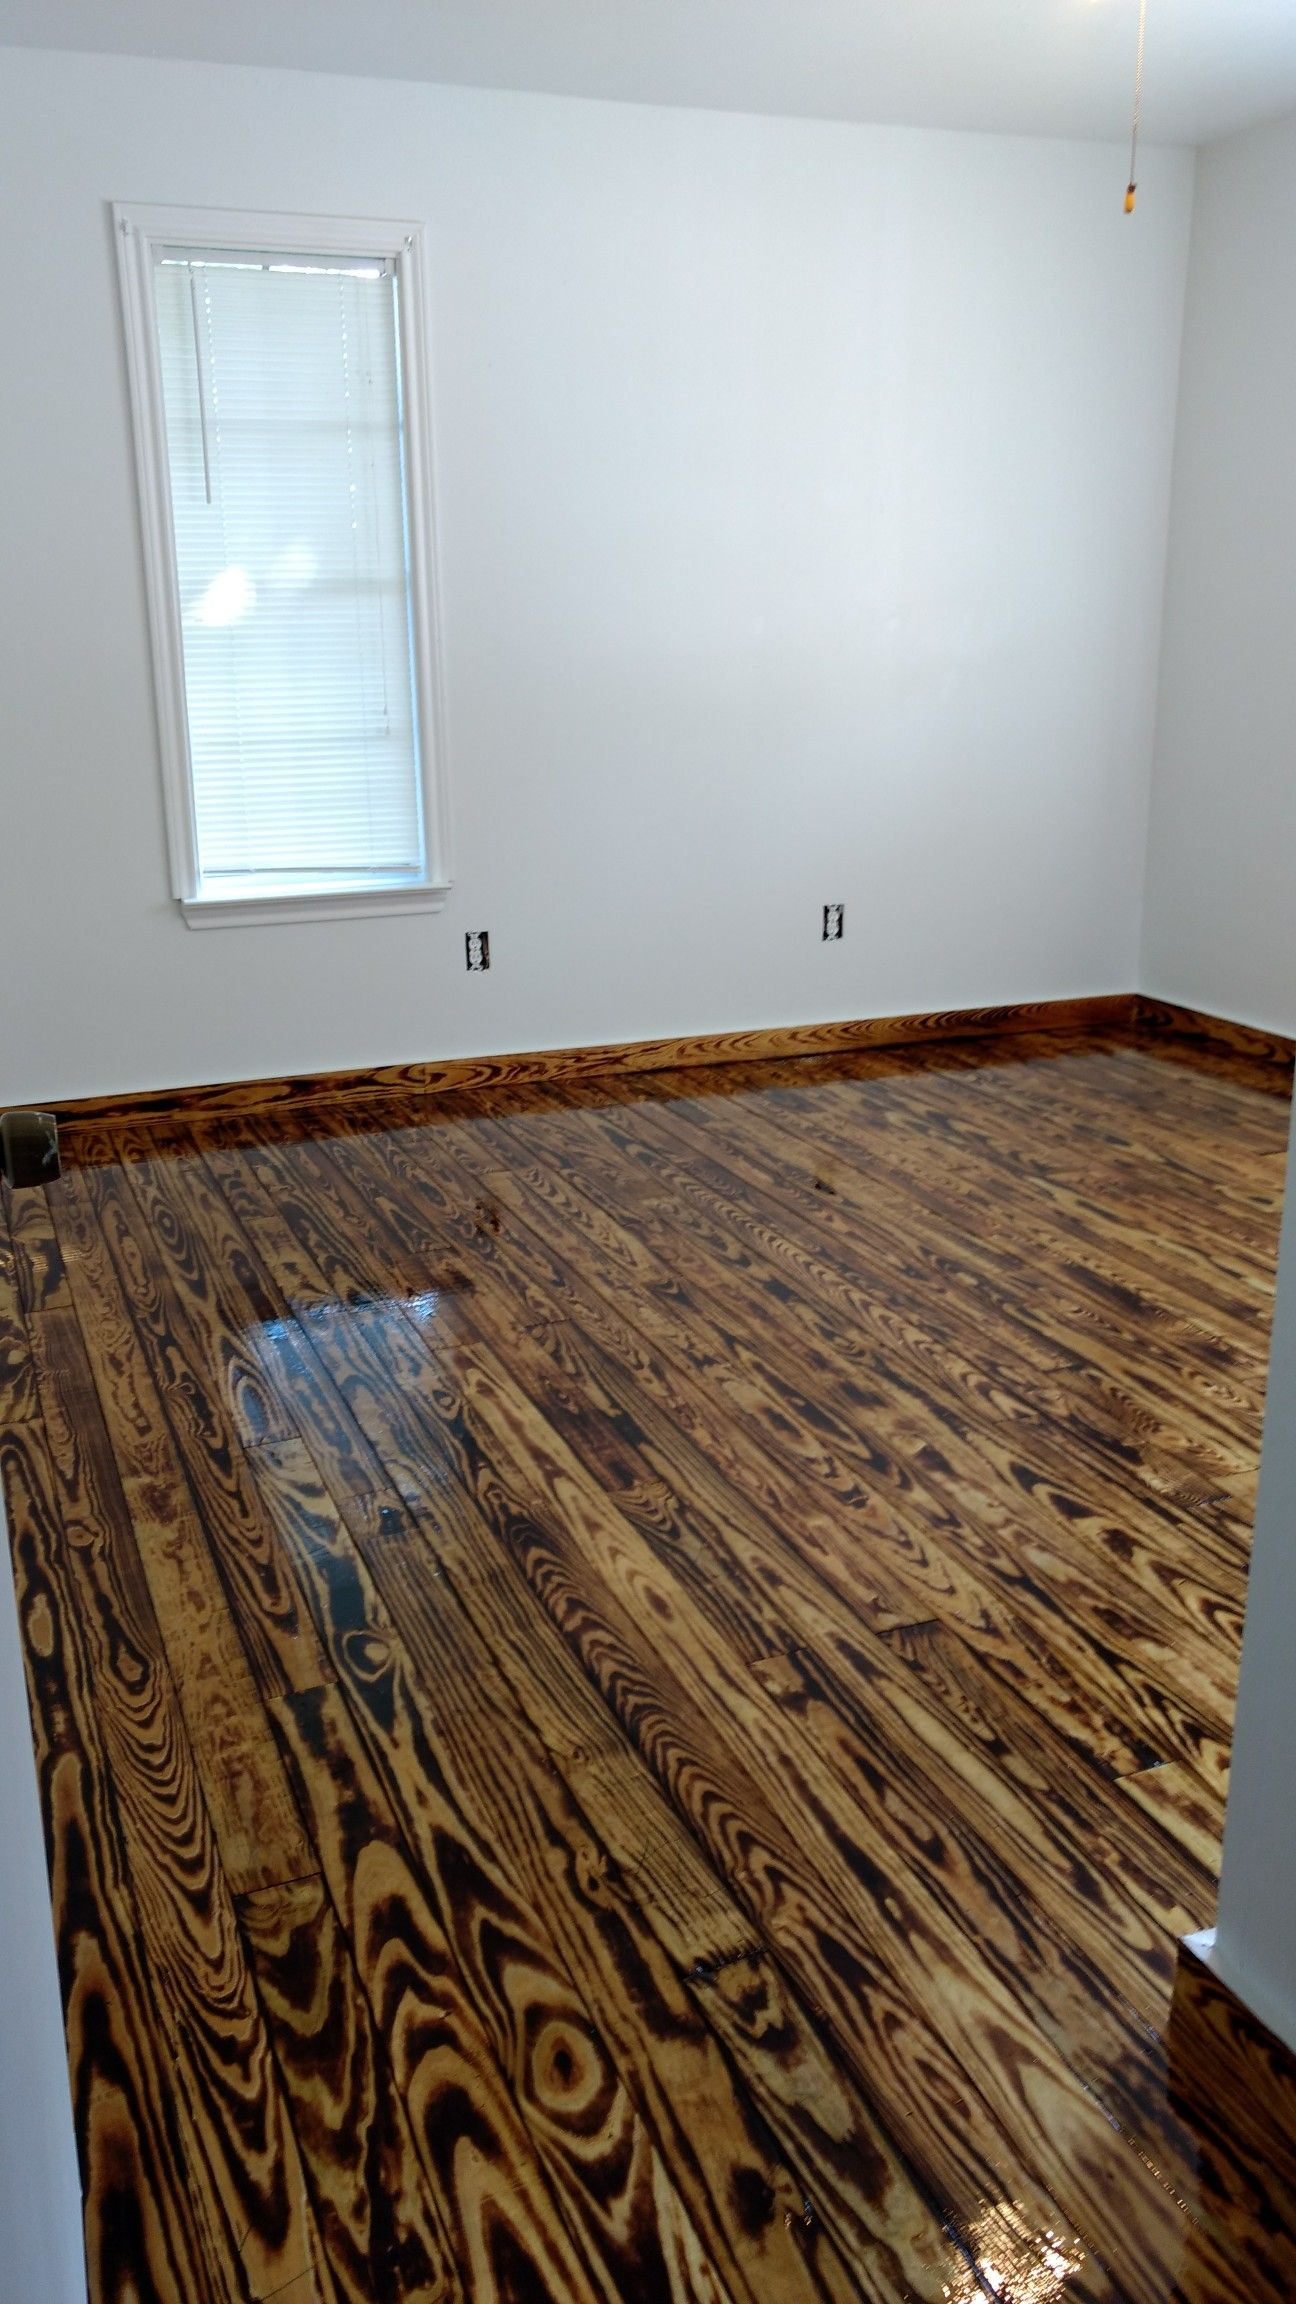 Dyi 1x4 Flooring Yellow Pine 1x4 Burnt With A Torch And Polyurethane Wood Floor Design Diy Wood Floors Pine Wood Flooring